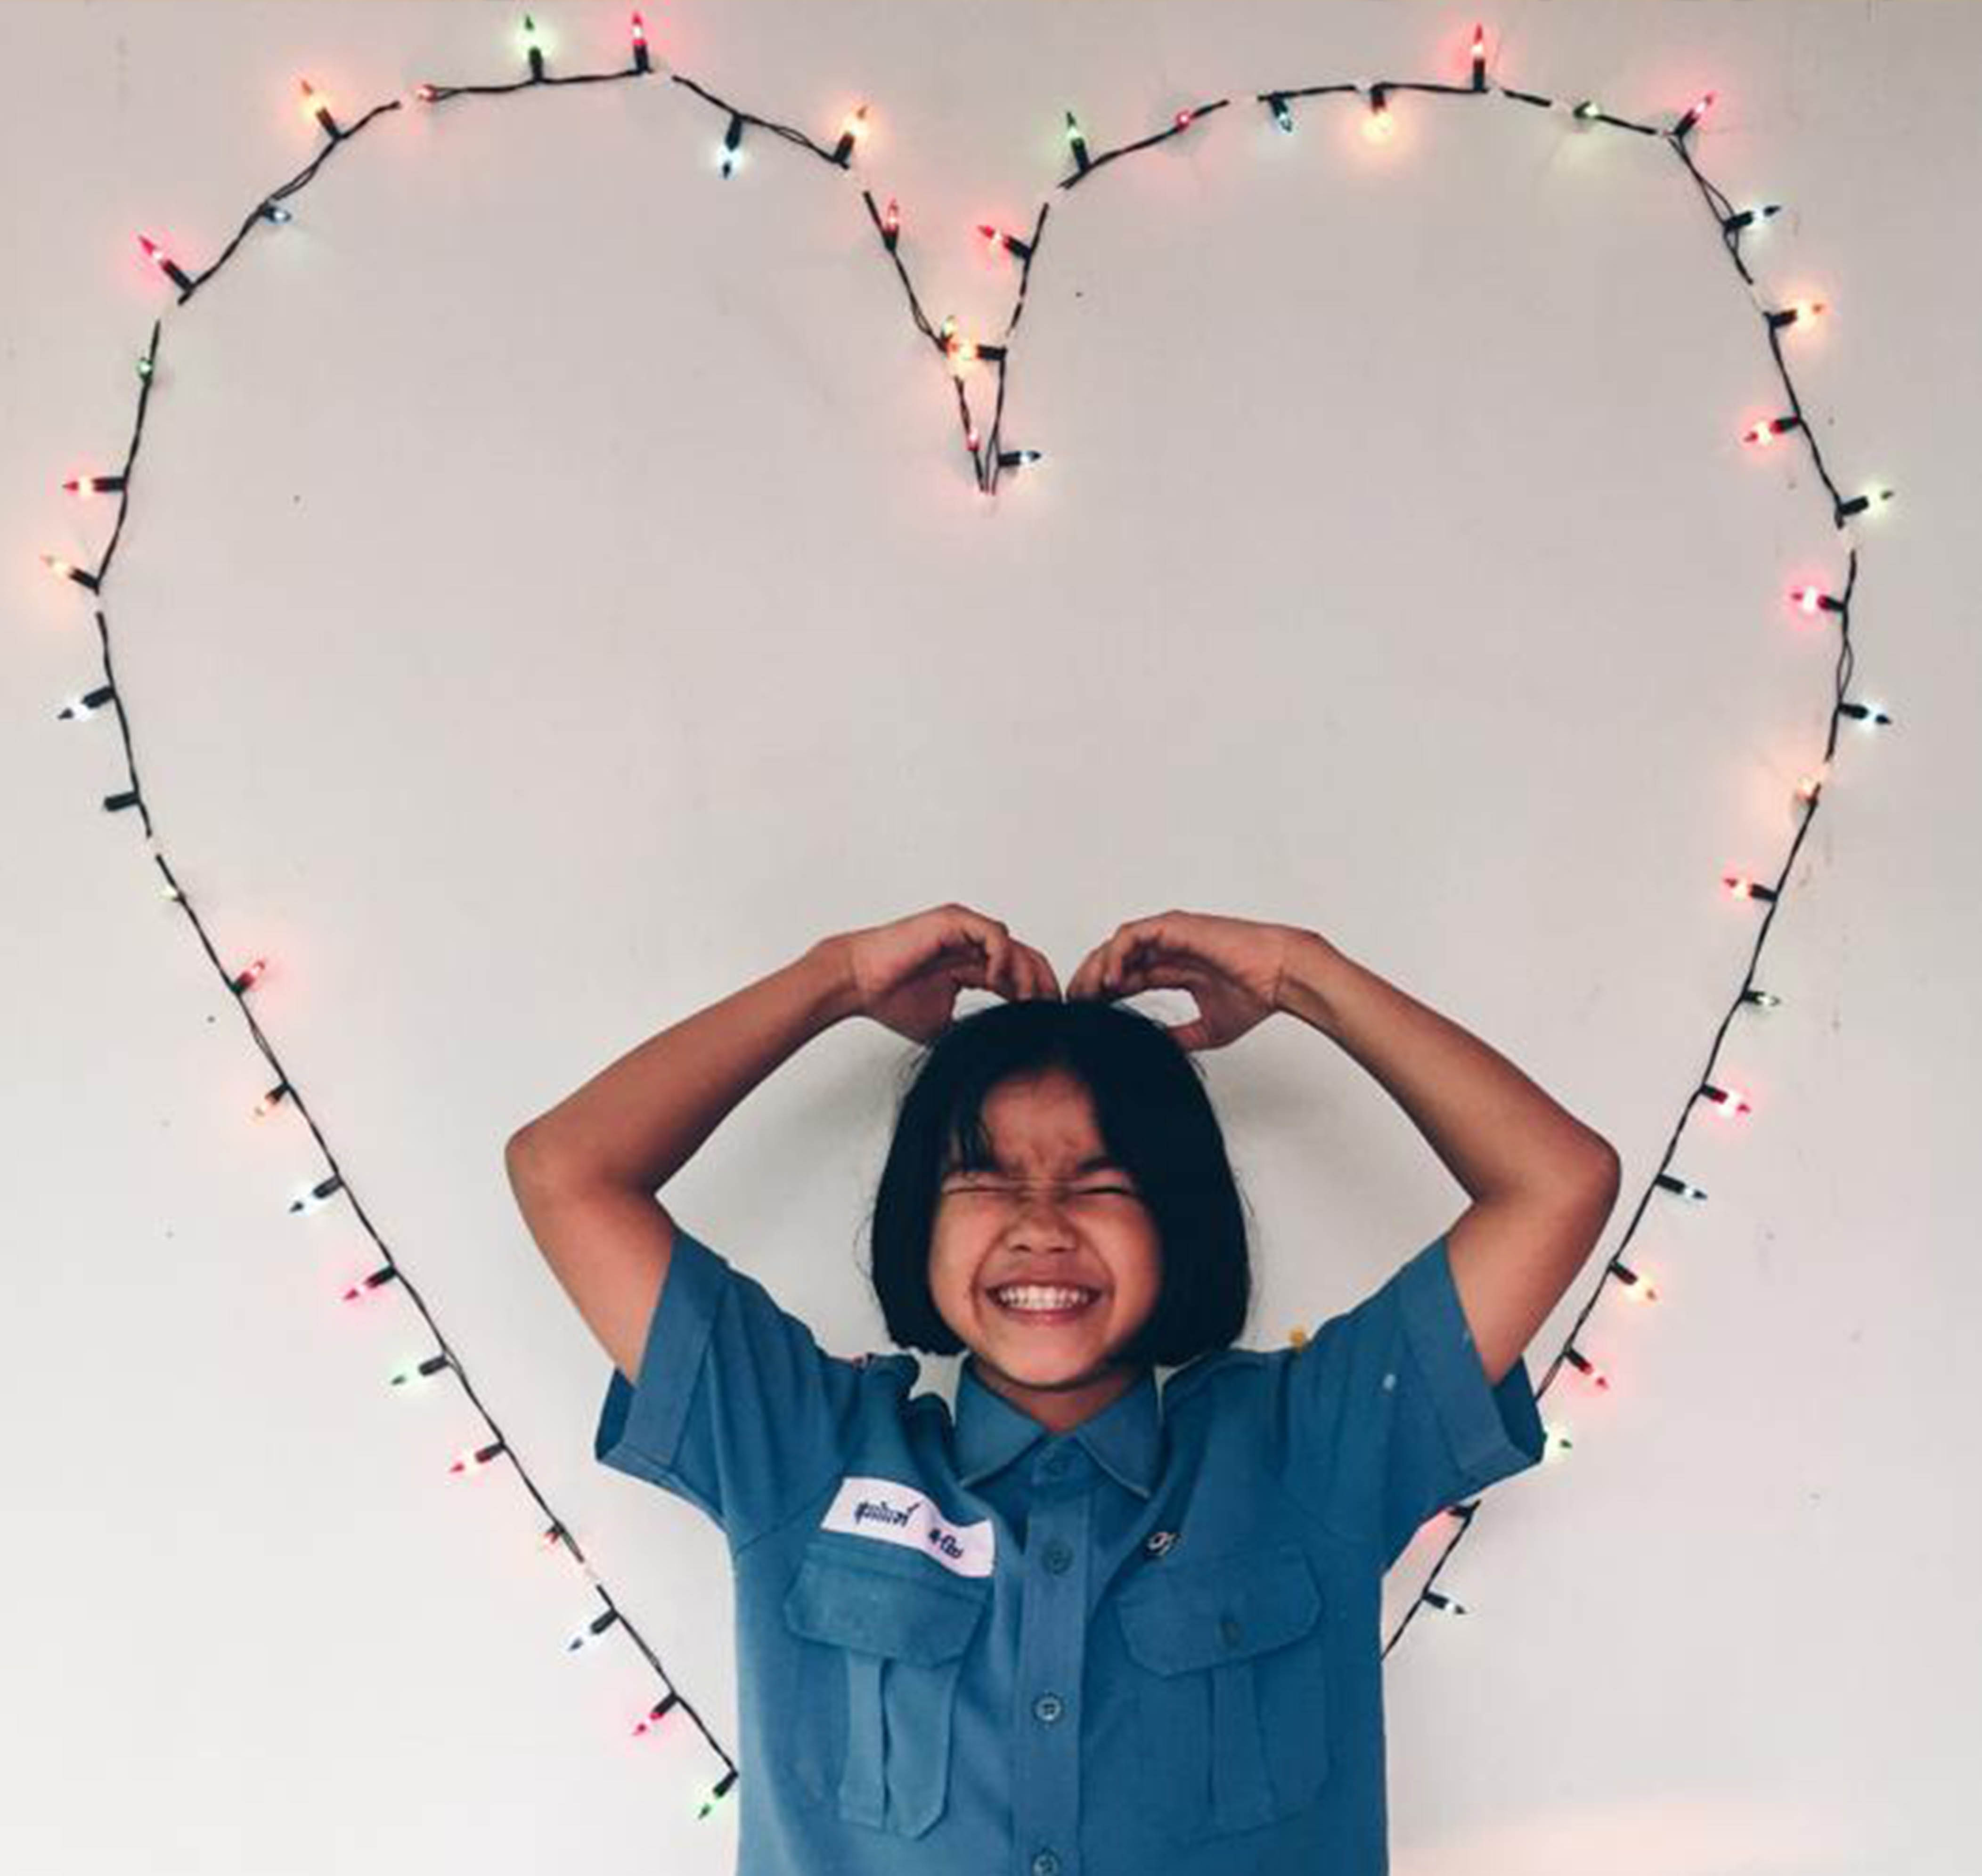 A young Thai girl in a blue shirt smiles and poses with a heart made out of fairy lights.